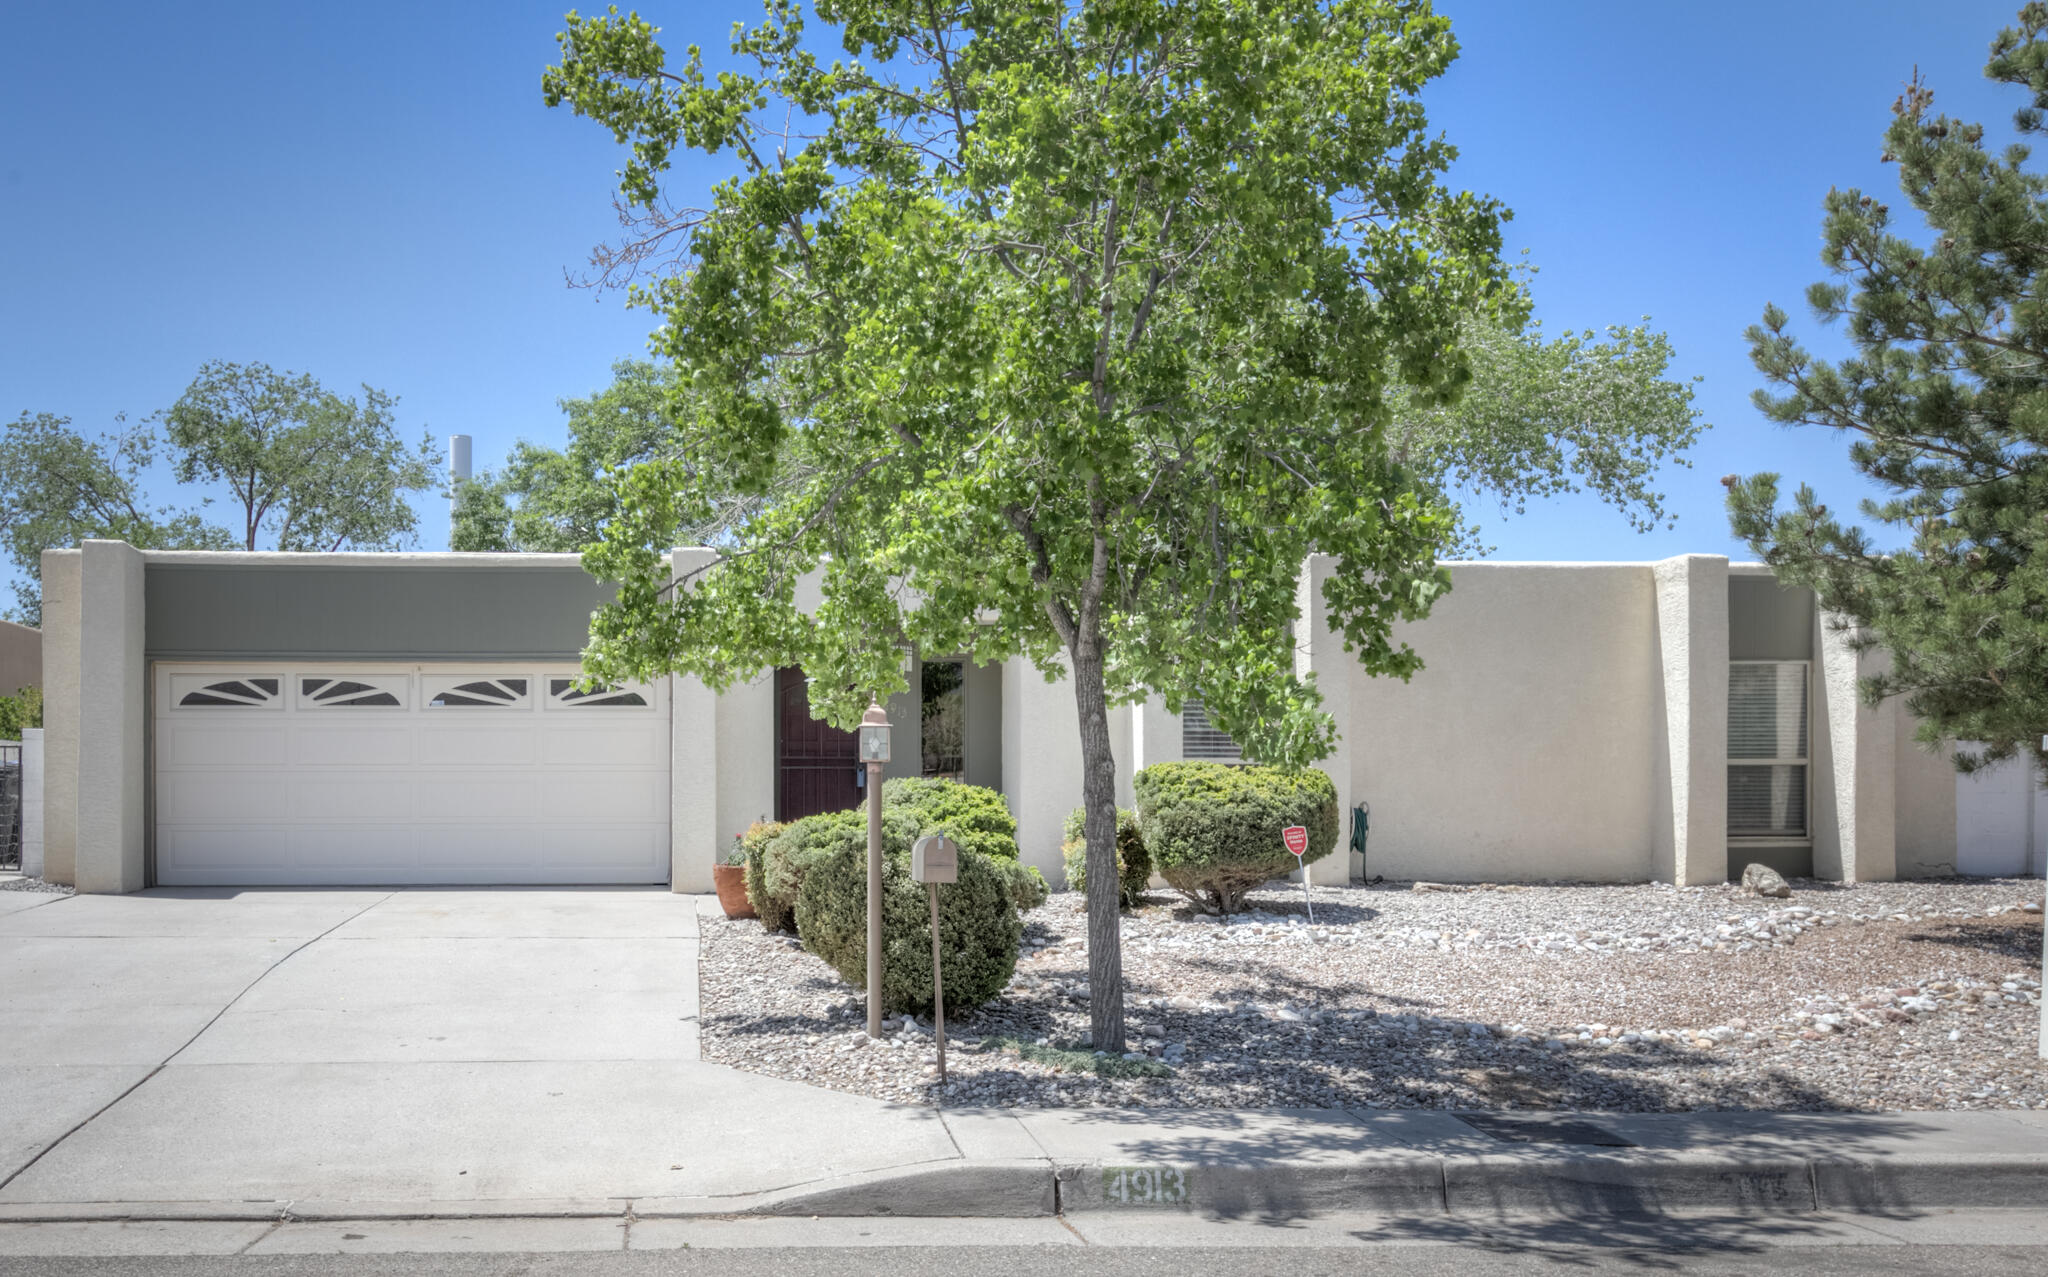 NE Heights single story with a fantastic layout! Offers two open living spaces & large dine in kitchen w/double ovens, tons of cabinetry & ample counter top space. The two living areas can be used as flex space for open living/office area or the Family Room can be easily converted to be a 5th bedroom! Master Bedroom is secluded from the other three bedrooms. The residence has ample storage with built in's throughout. The new owner is sure to love the private Park-like Backyard with mature shade trees, grass & outdoor living area! The outdoor living area has a grilling station, fireplace,fridge, built in bench seating and string lights.The south side of the house was once used as a green house & can be easily converted by new owner.Other amenities include;TPO roof, two evaporative coolers